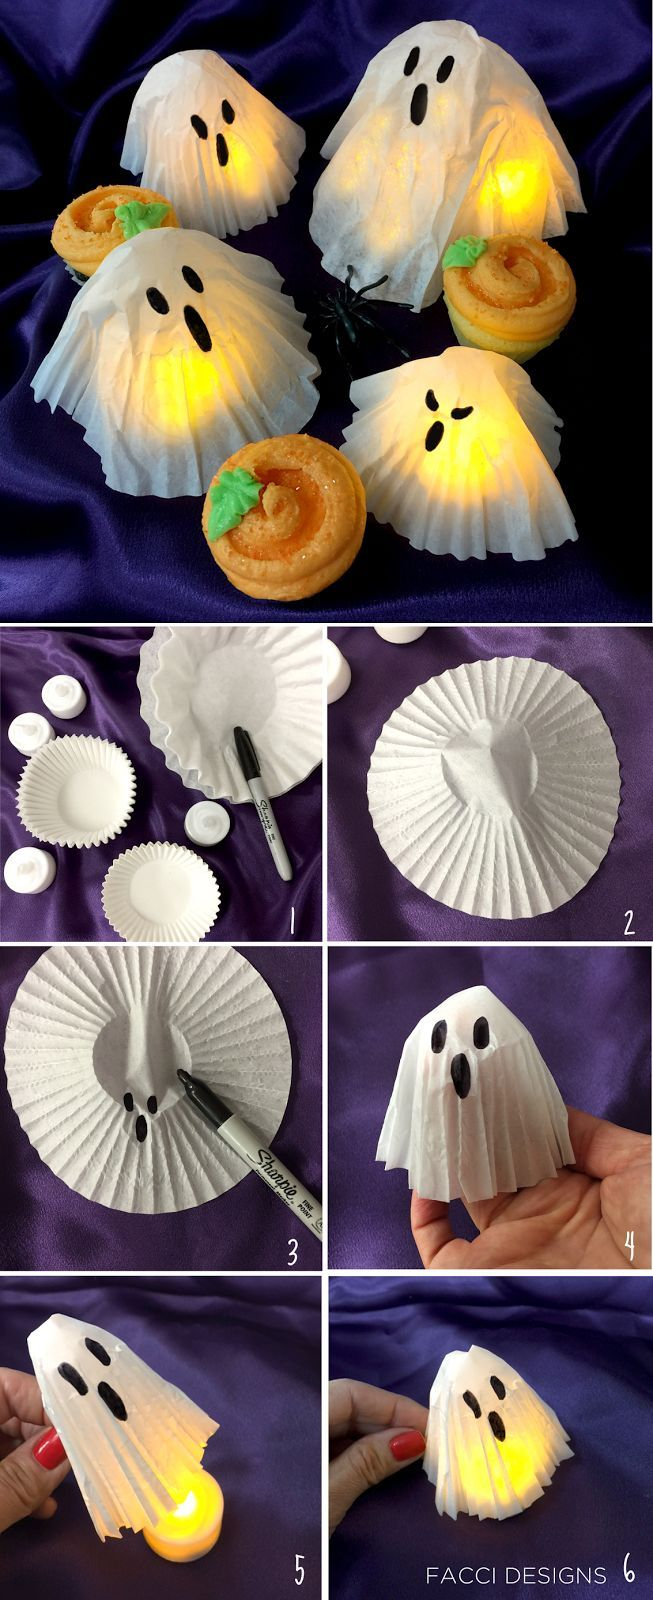 The easiest Halloween craft using cupcake liners and coffee filters. Facci Desig…